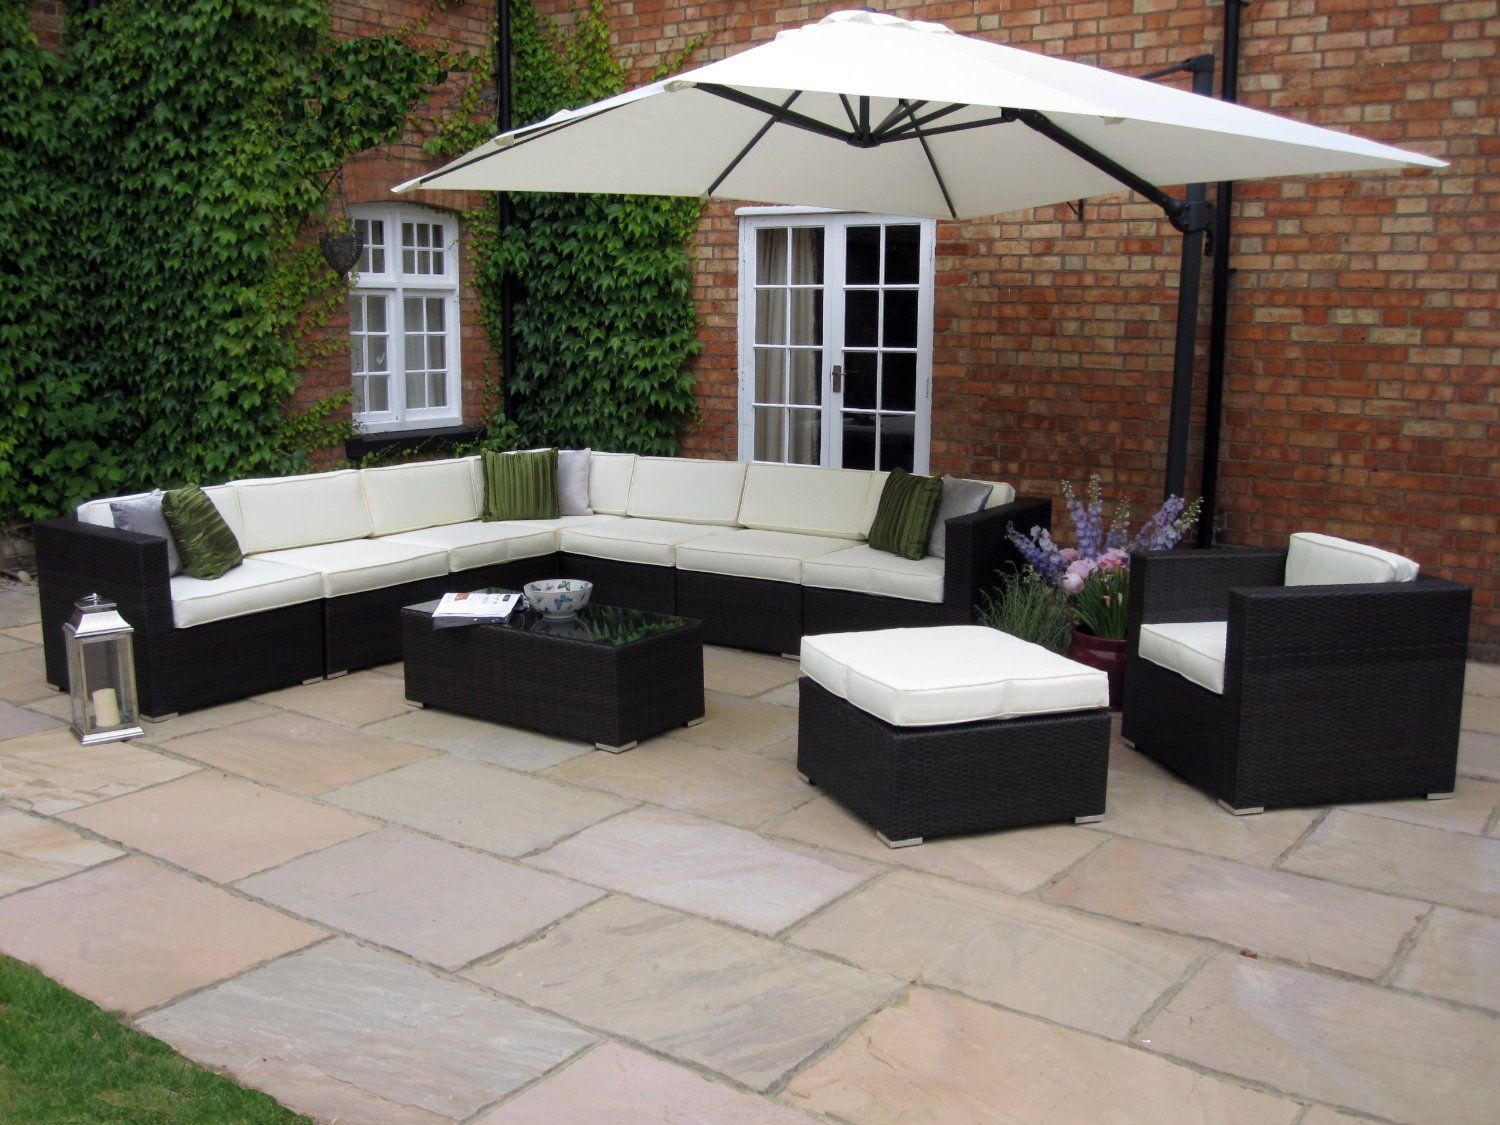 Oakita Rattan Garden Furniture Corner Sofa And King Parasol